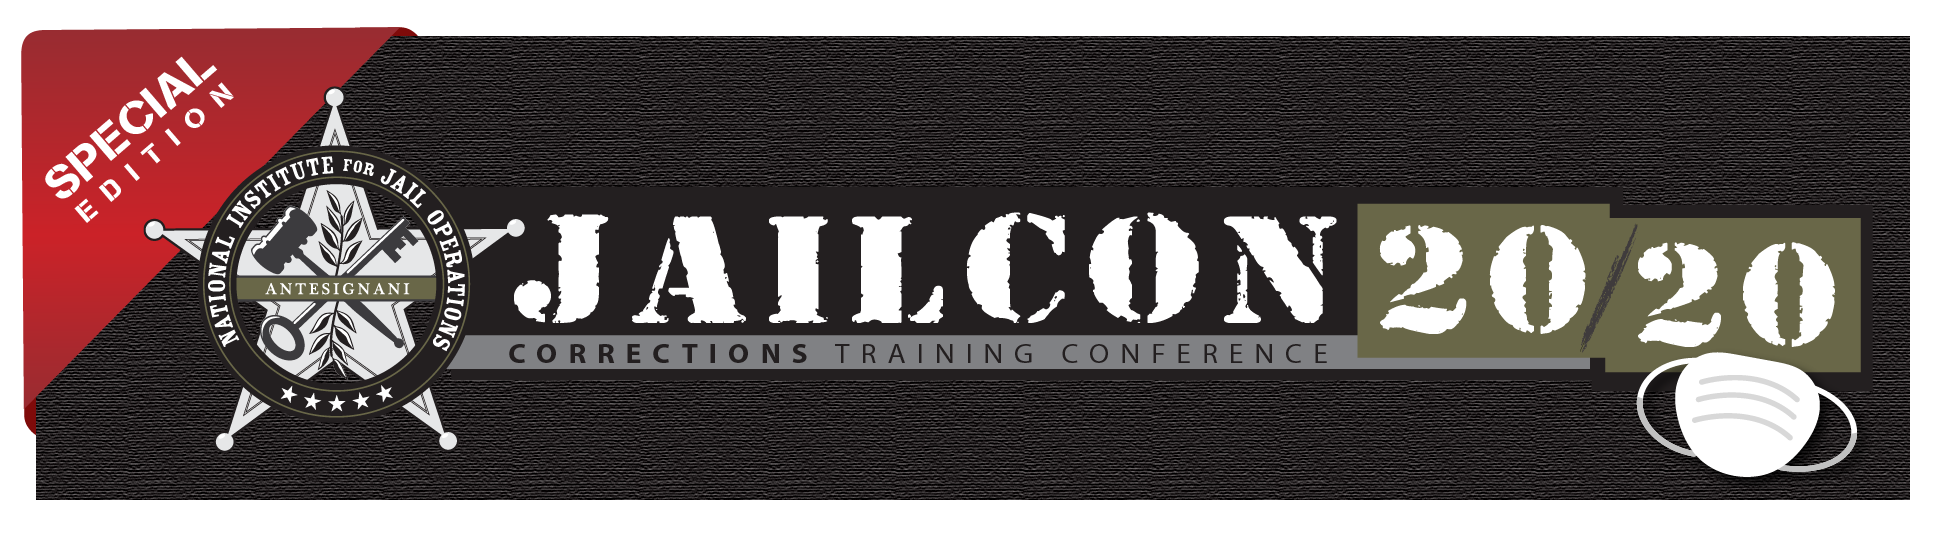 JAILCON 2020 Conference Header